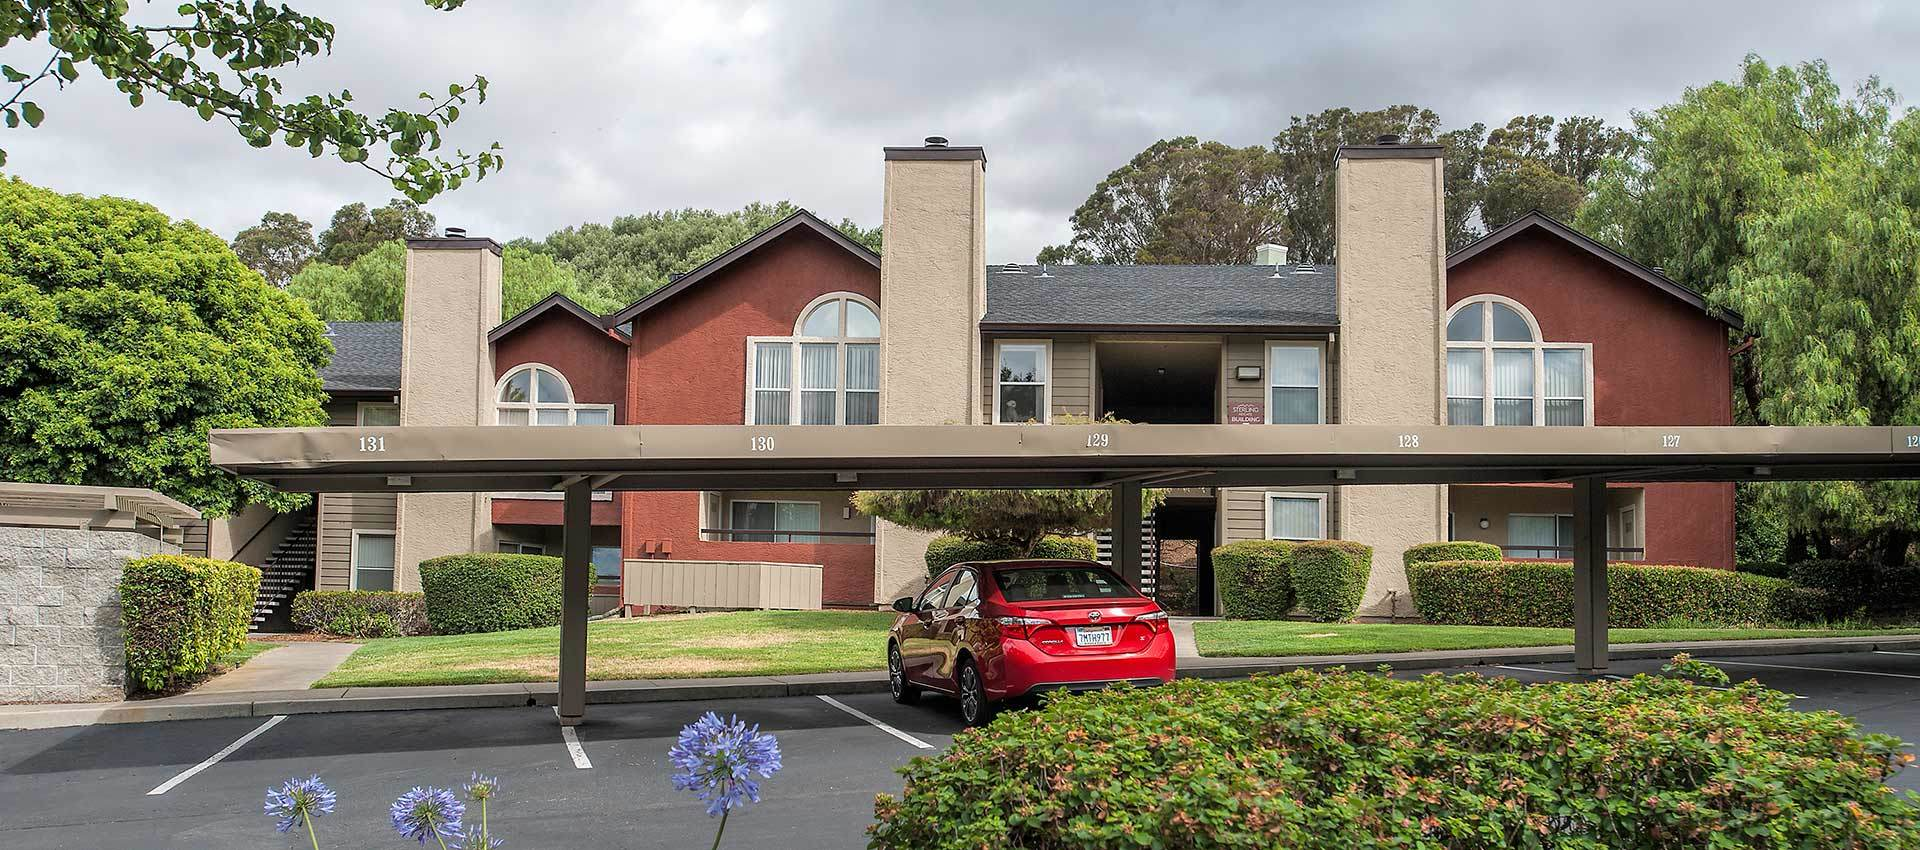 Covered Parking at Sterling Heights Apartment Homes in Benicia, California